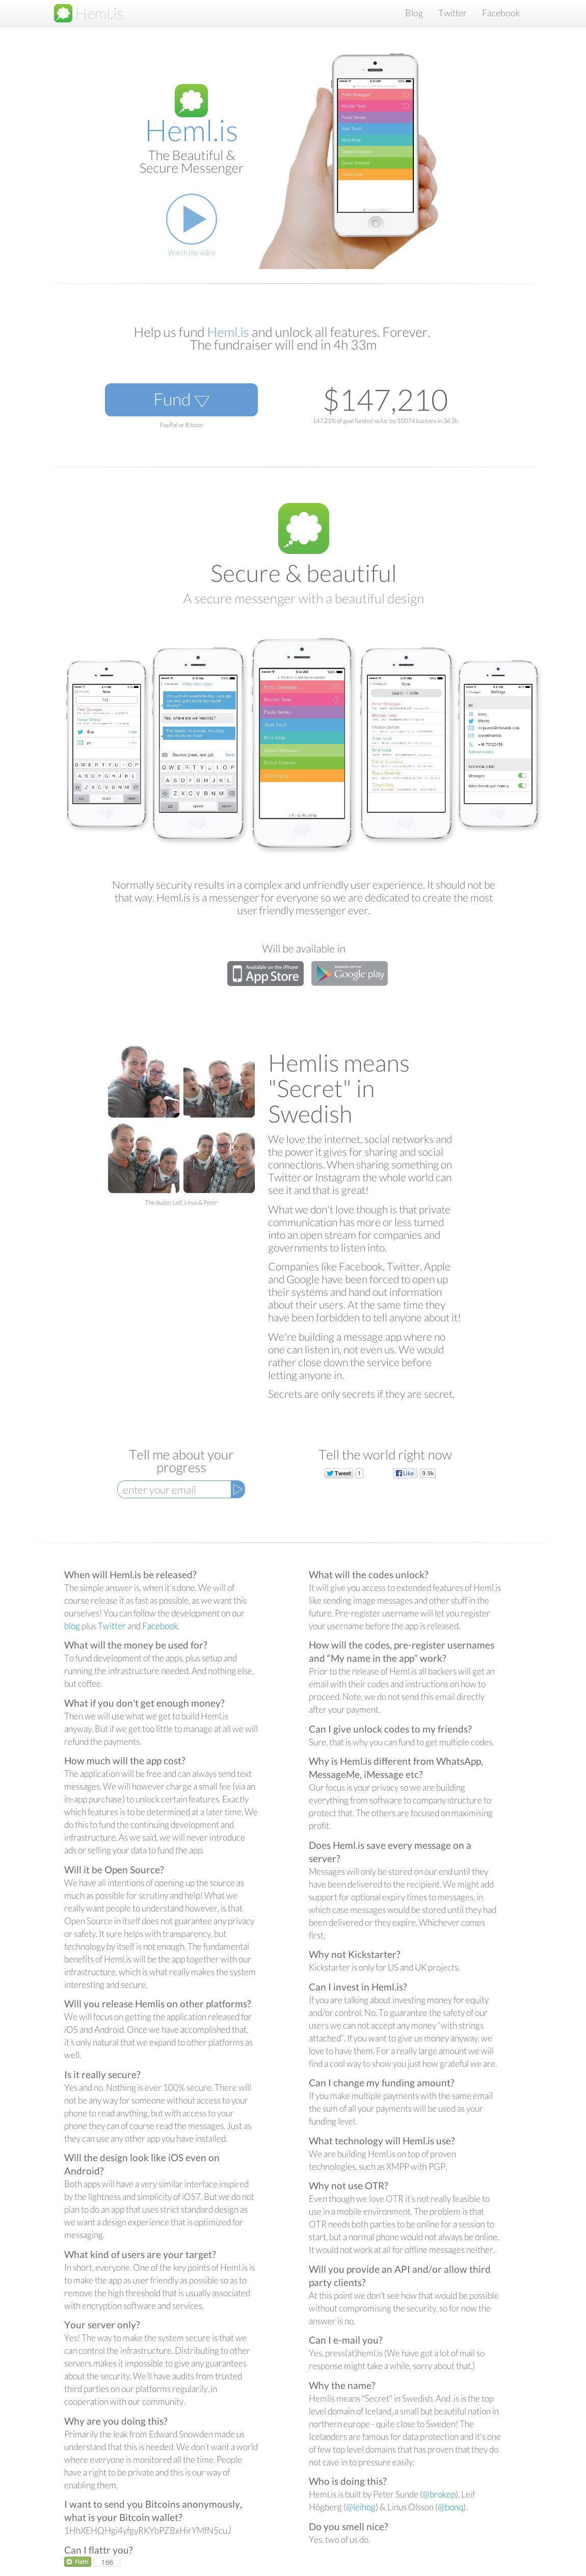 Heml.is Website Screenshot